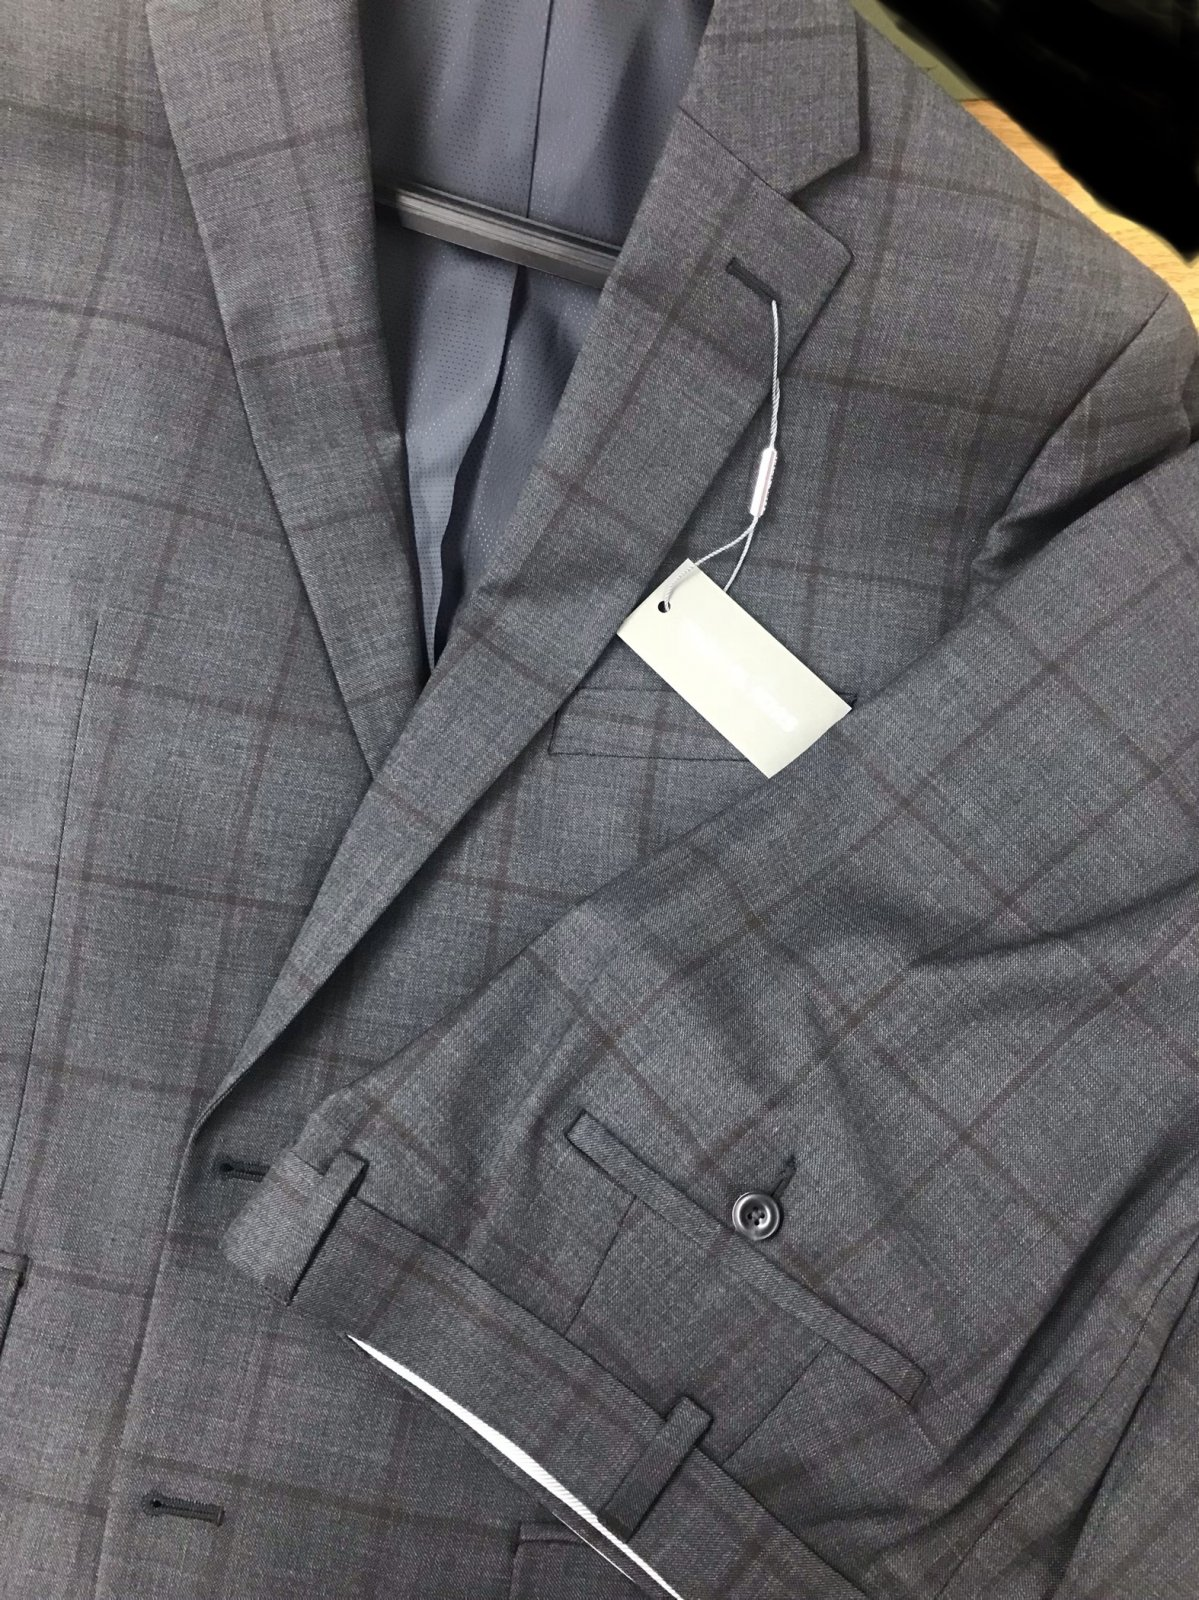 Michael Kors Charcoal/Brown Windowpane Suit